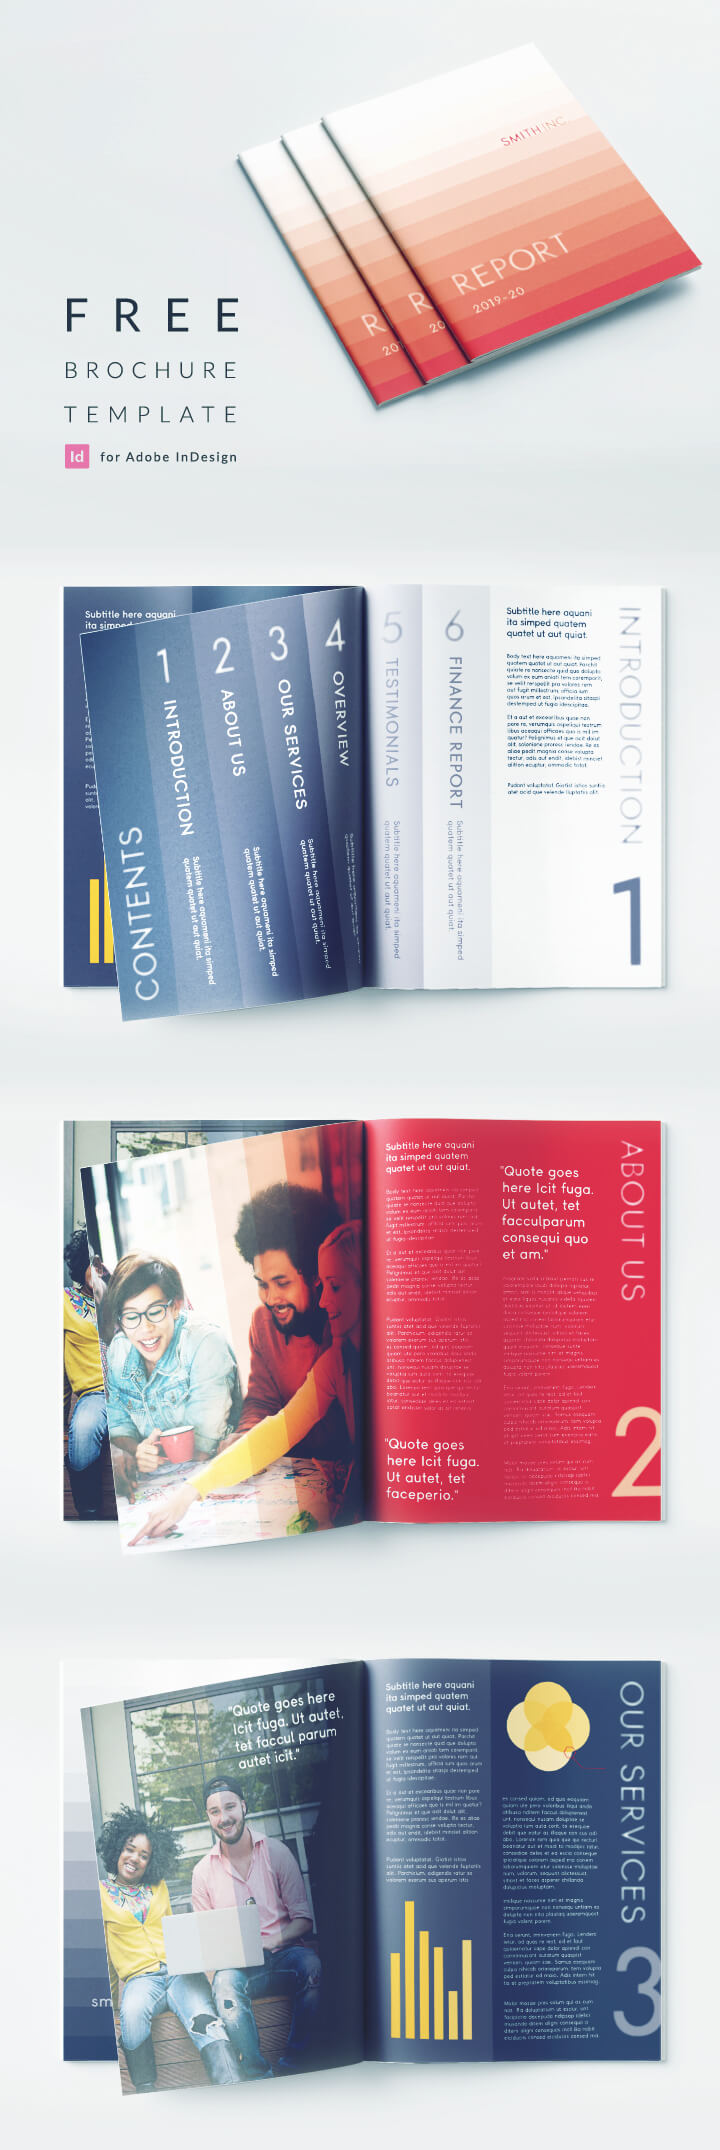 Bi Fold Brochure Template for InDesign with a Corporate theme. Perfect for a business report. Free download for InDesign, smart red and blue corporate color scheme.